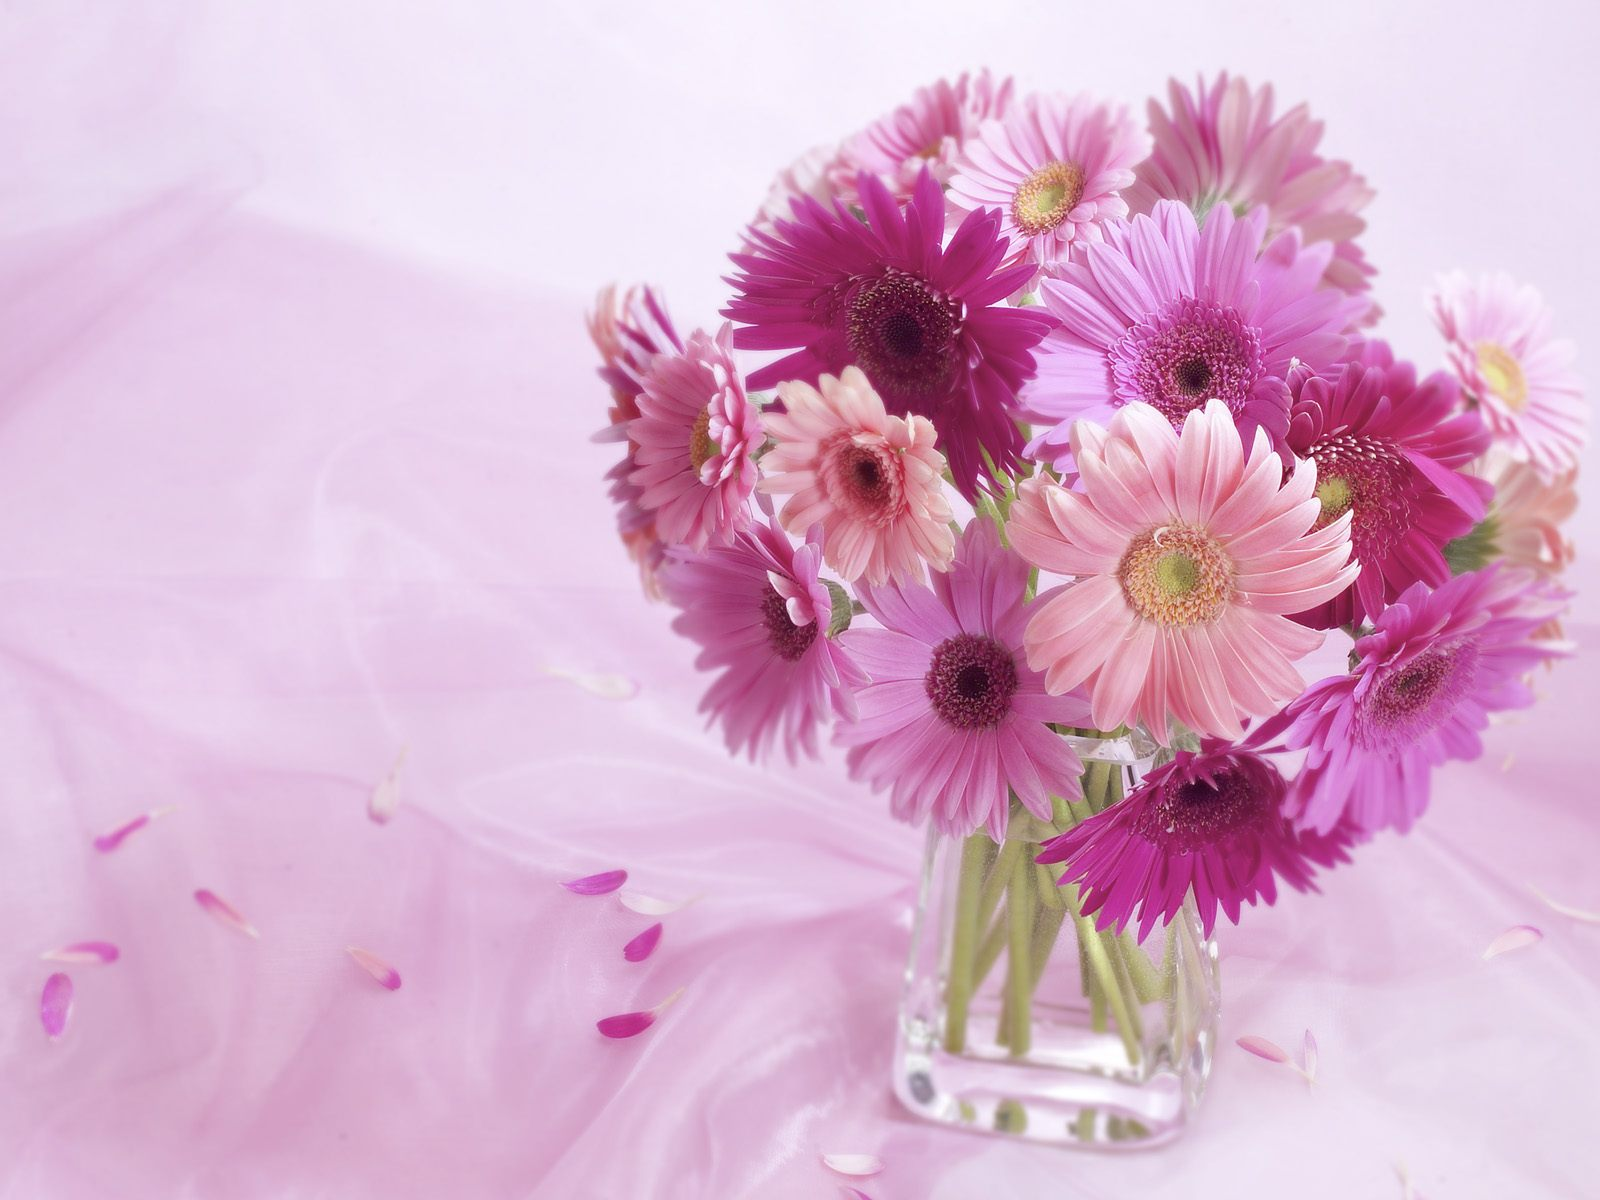 Gerbera Daisy Arrangement Wallpapers HD Wallpapers 1600x1200